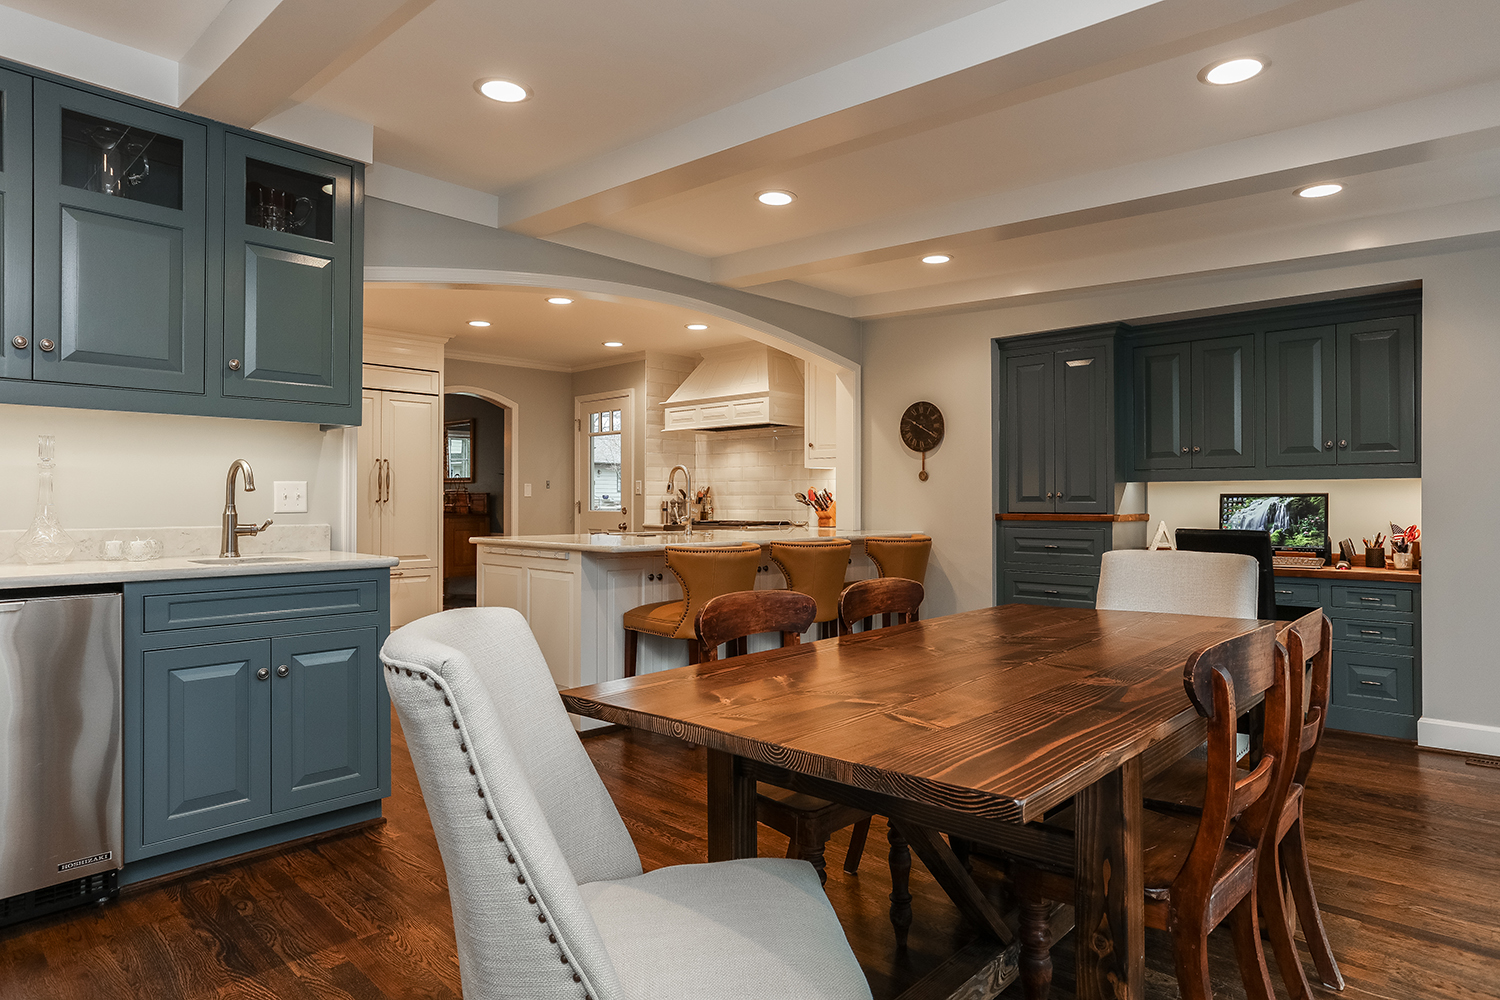 wet bar in a breakfast room with a built in office space adjoining the kitchen